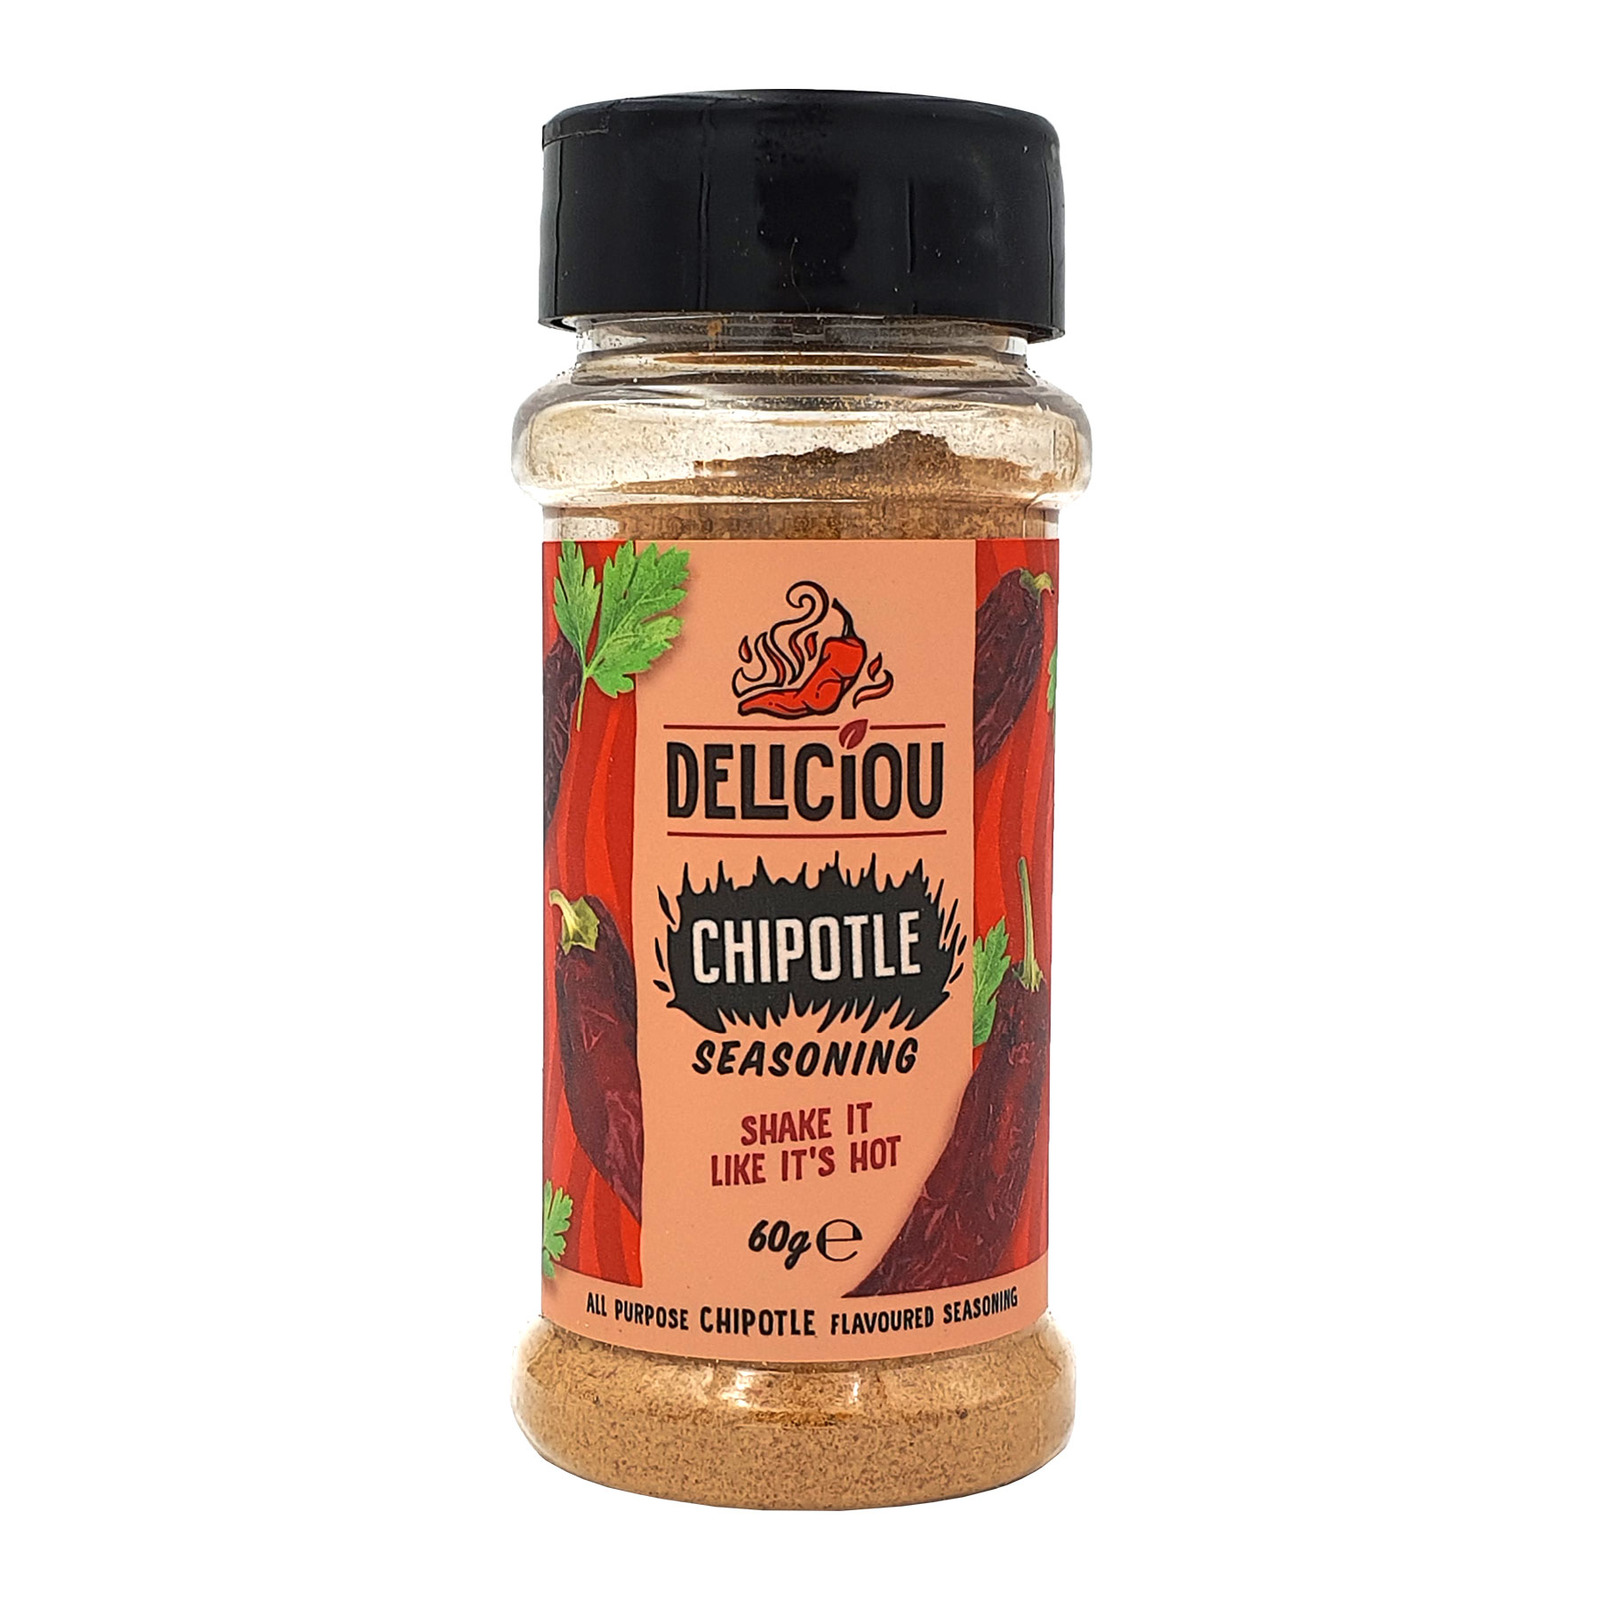 Deliciou Vegan Chipotle Seasoning Gluten Free Kosher